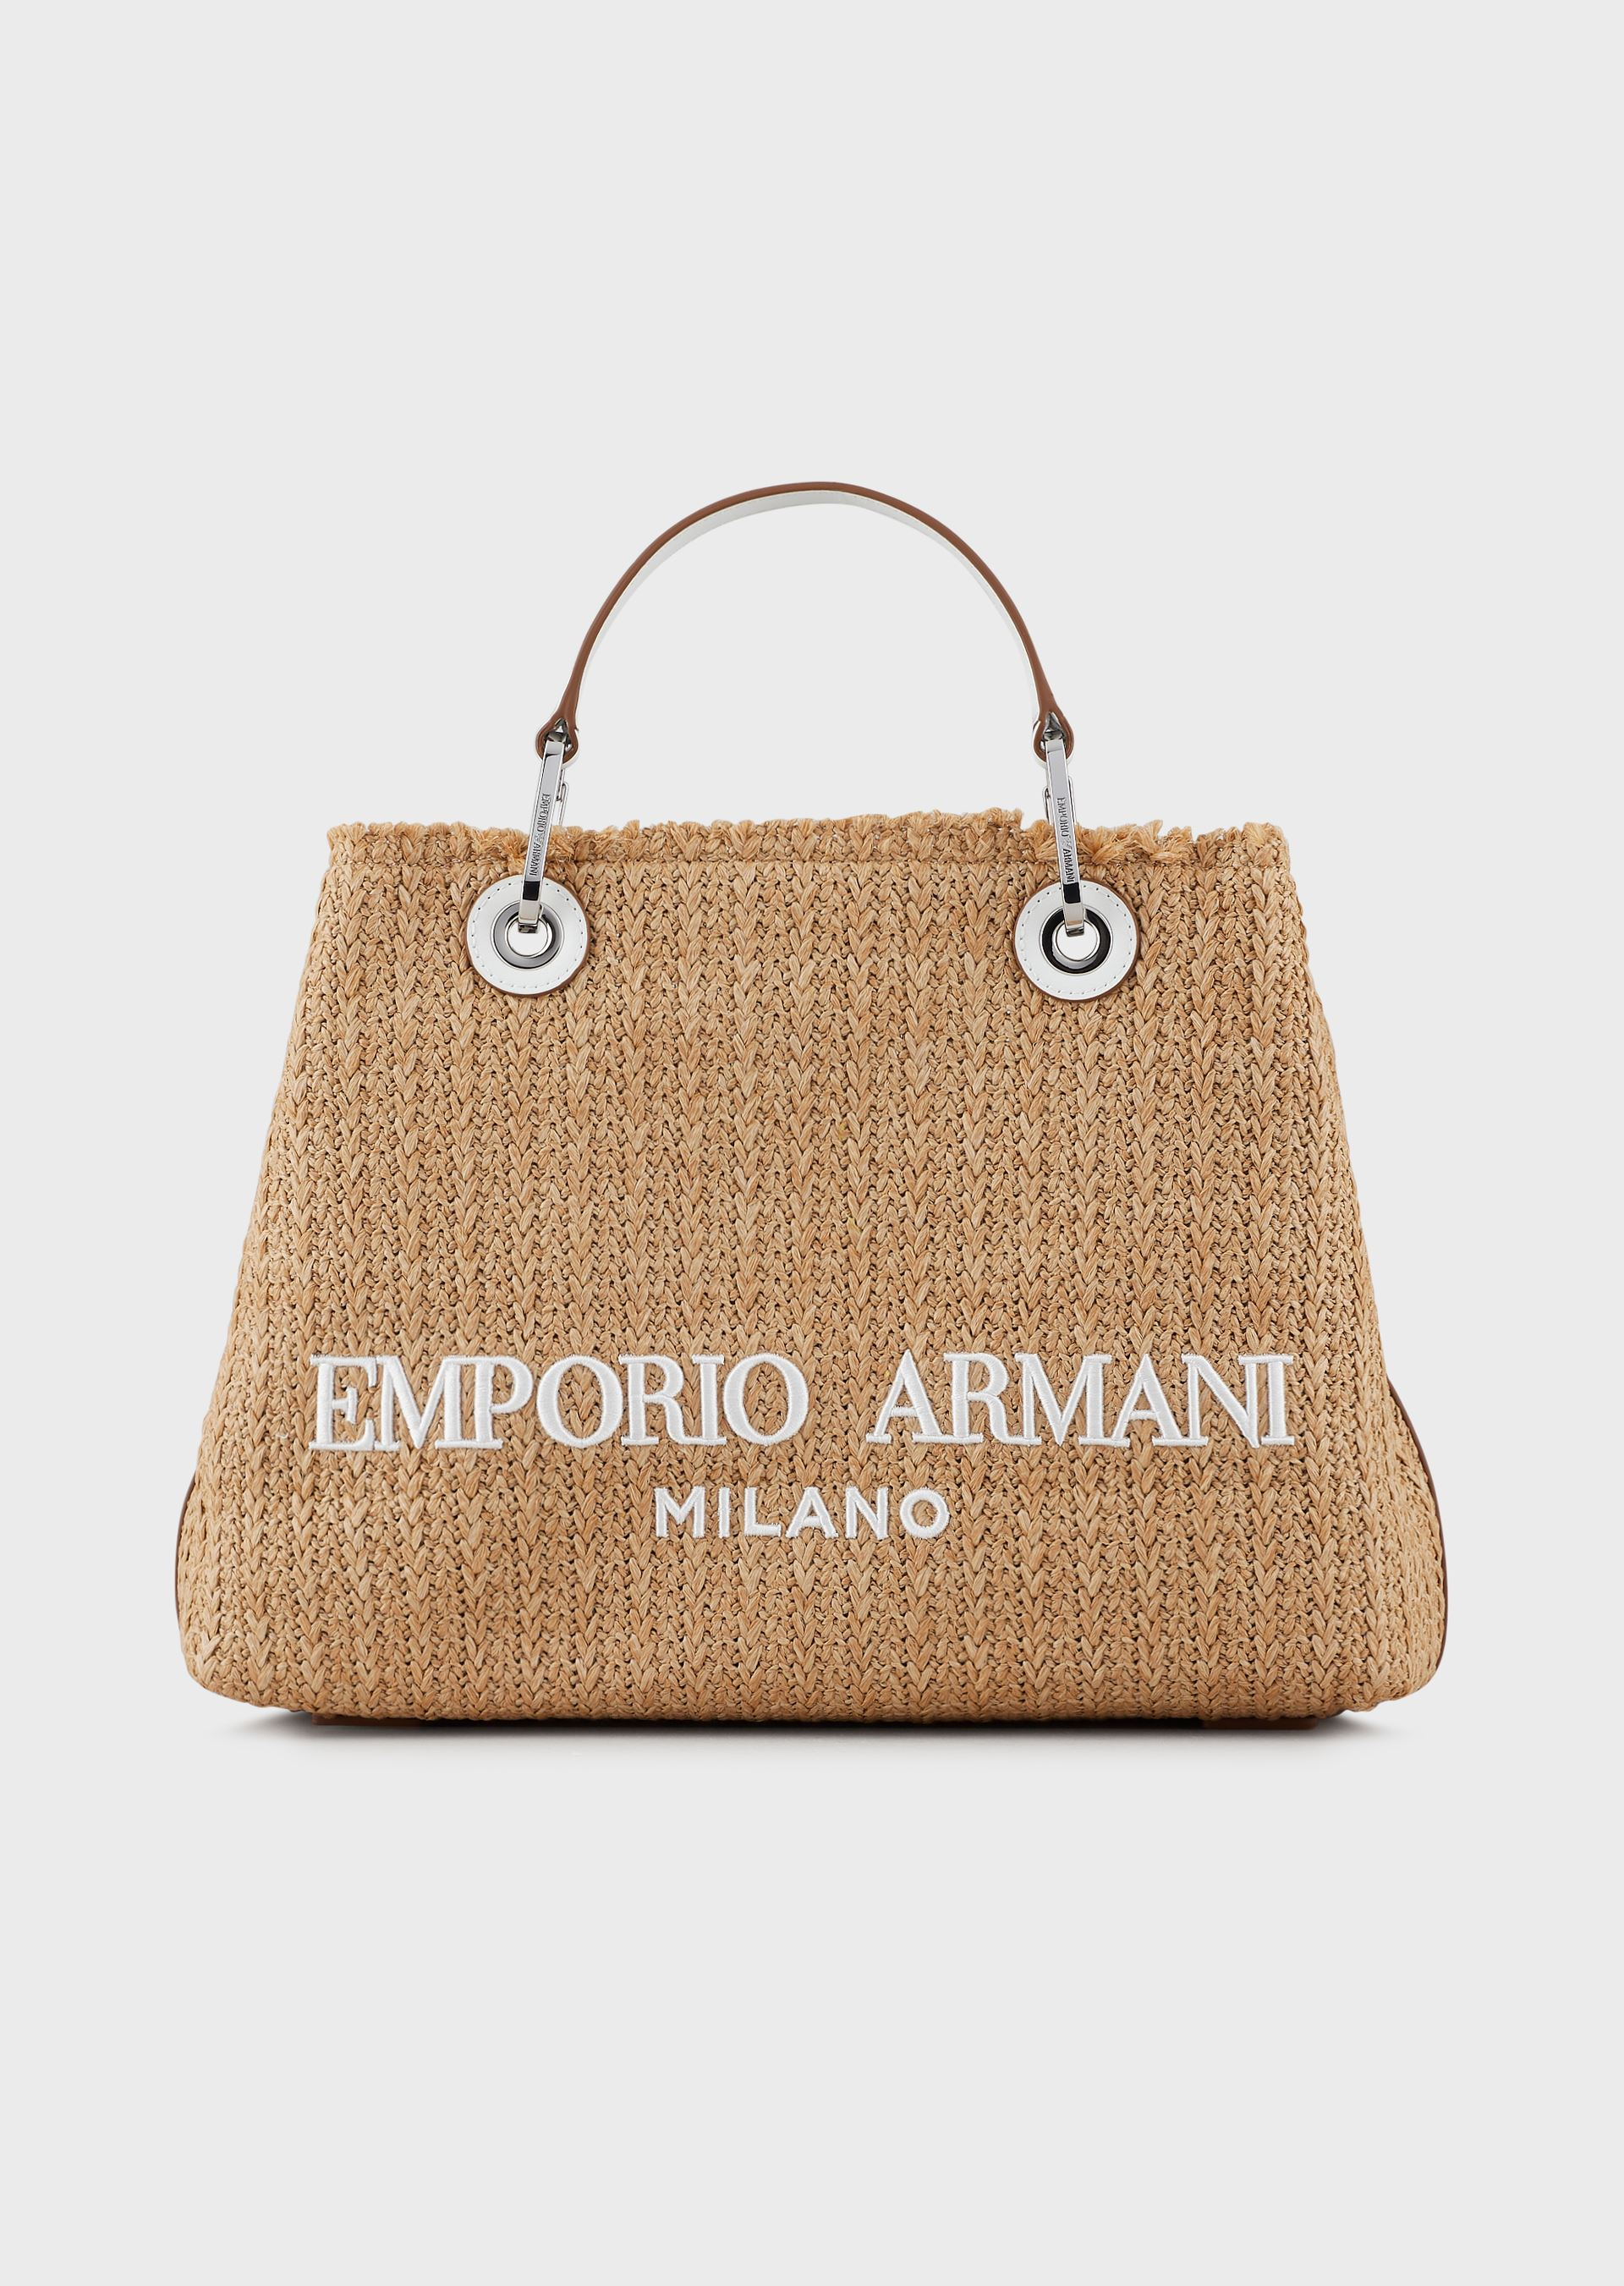 EMPORIO ARMANI MyEA Bag woven straw shopper bag